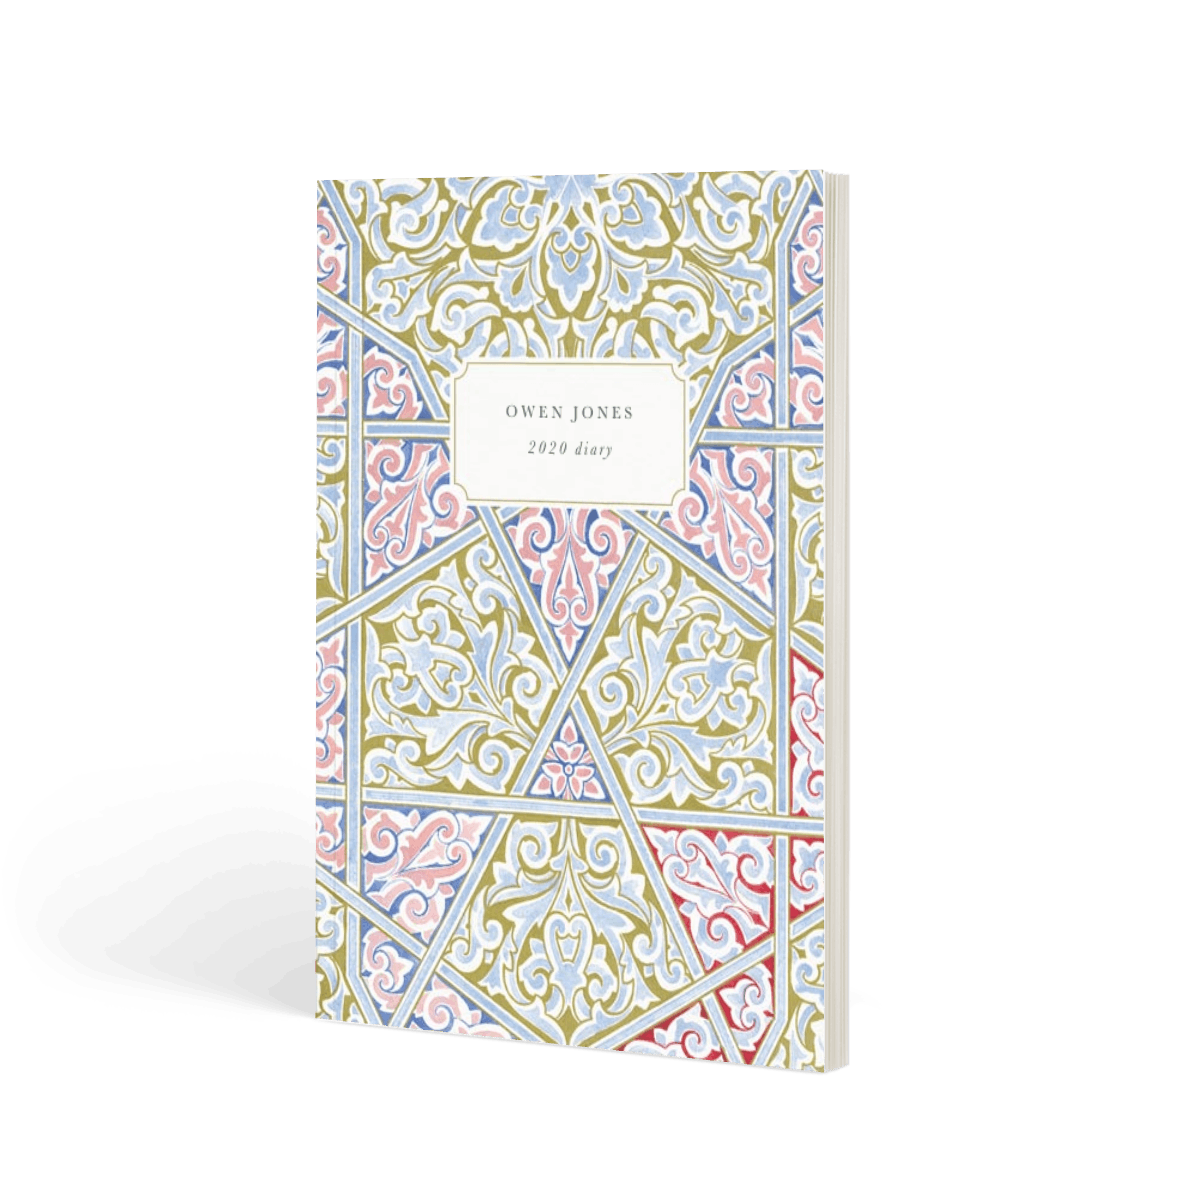 Https%3a%2f%2fwww.papier.com%2fproduct image%2f31092%2f7%2fpastel filigree 7812 front 1543416970.png?ixlib=rb 1.1